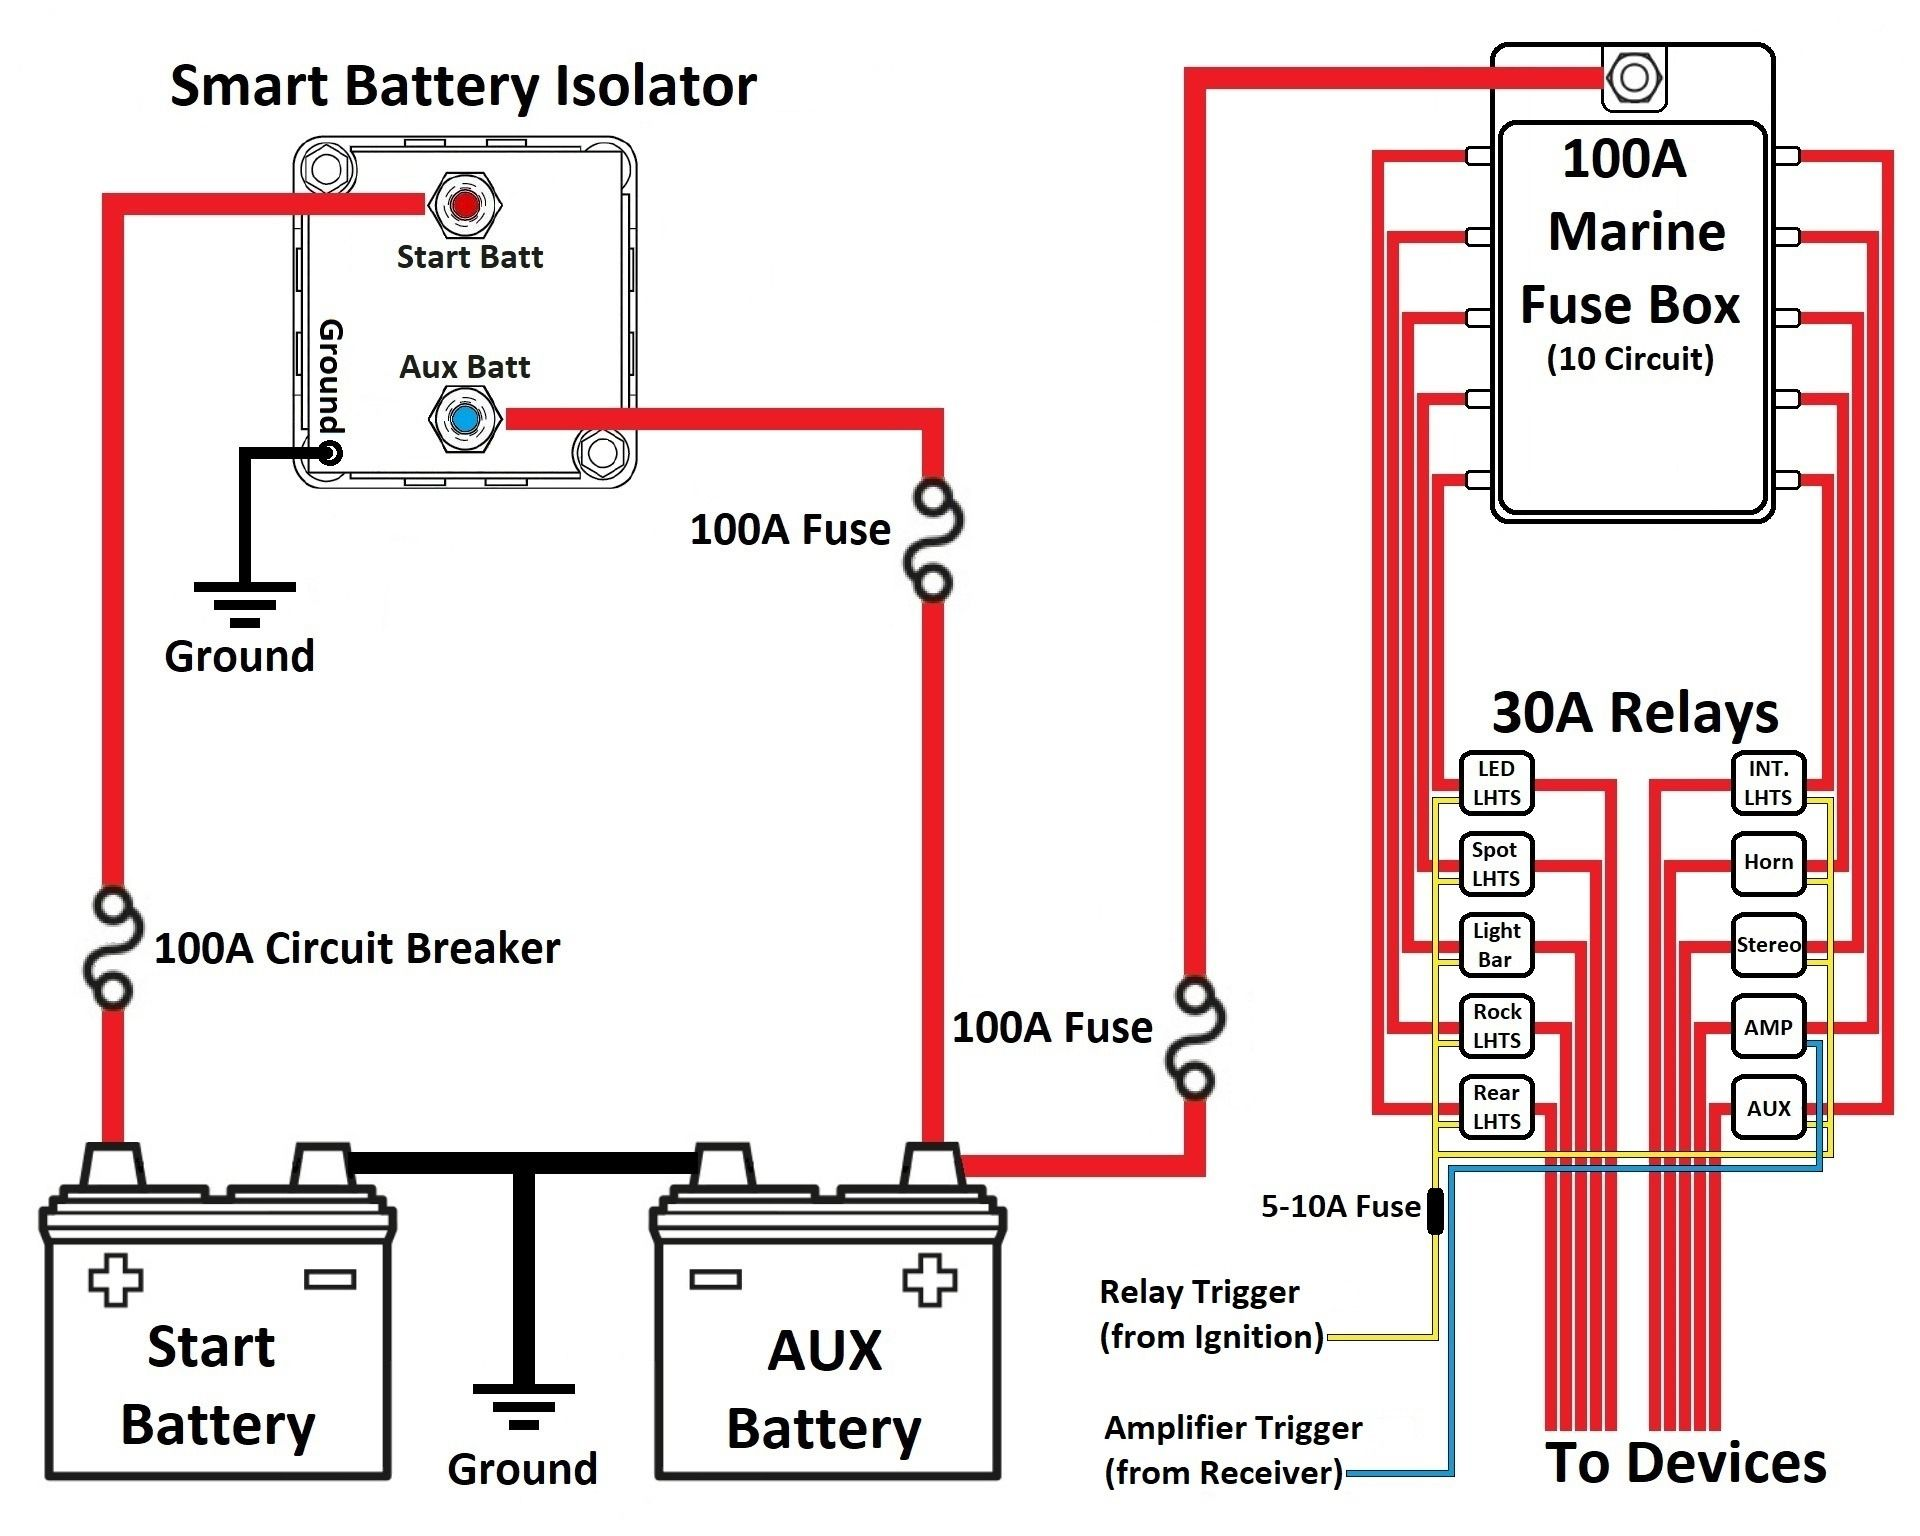 hight resolution of a battery isolator wiring diagram is a compacted conventional picture representation of a electric circuit it shows that the components of the circuit as